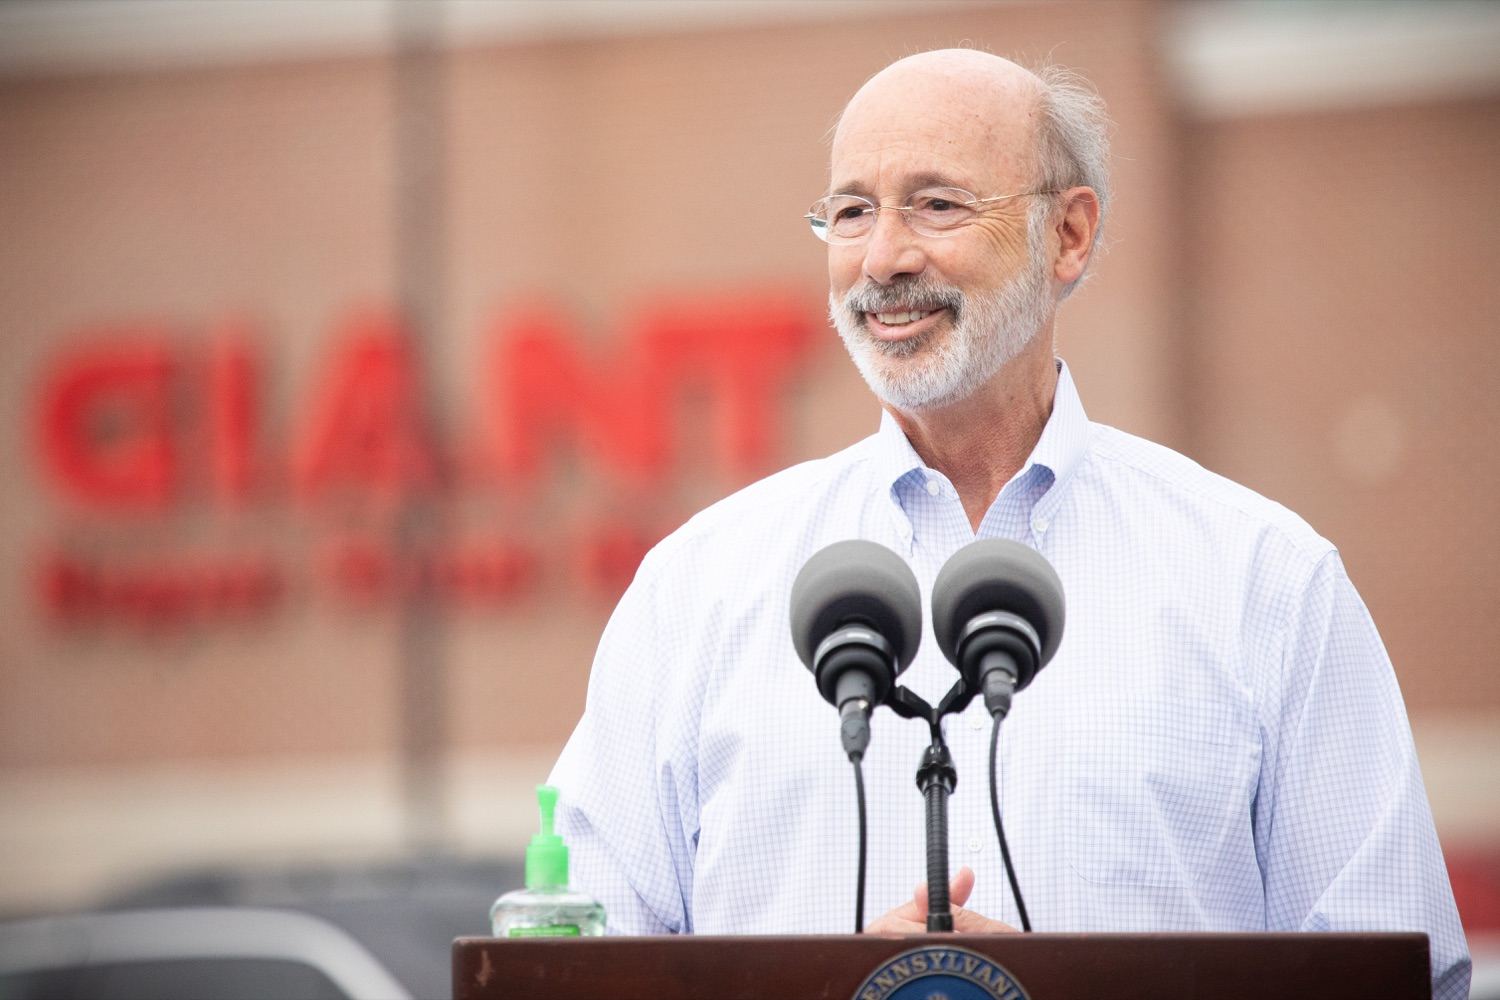 """<a href=""""https://filesource.wostreaming.net/commonwealthofpa/photo/18166_gov_cares_act_dz_13.jpg"""" target=""""_blank"""">⇣Download Photo<br></a>Pennsylvania Governor Tom Wolf speaking to reporters at the announcement. Today, Governor Tom Wolf announced the availability of $50 million in grant funding to help employers provide hazard pay to employees in life-sustaining occupations during the COVID-19 pandemic. Hazard pay is intended to keep front-line employees working in vital industry sectors across Pennsylvania.  Harrisburg, PA  July 16, 2020"""